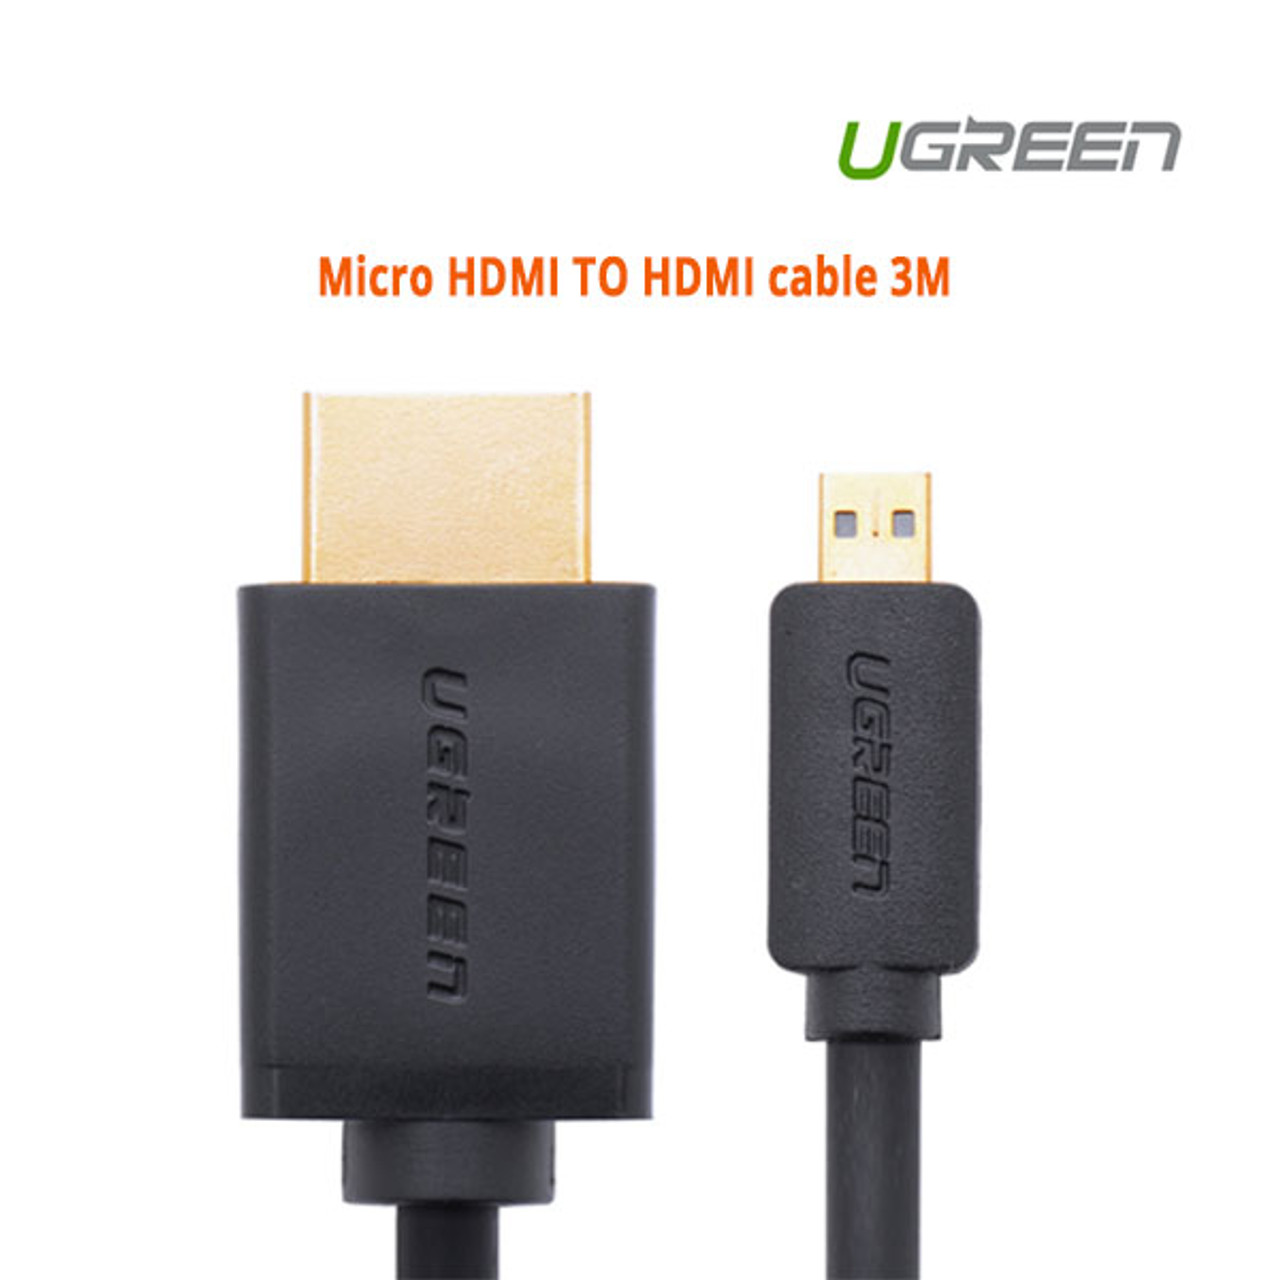 Product image for 3M UGreen Micro HDMI TO HDMI cable | CX Computer Superstore